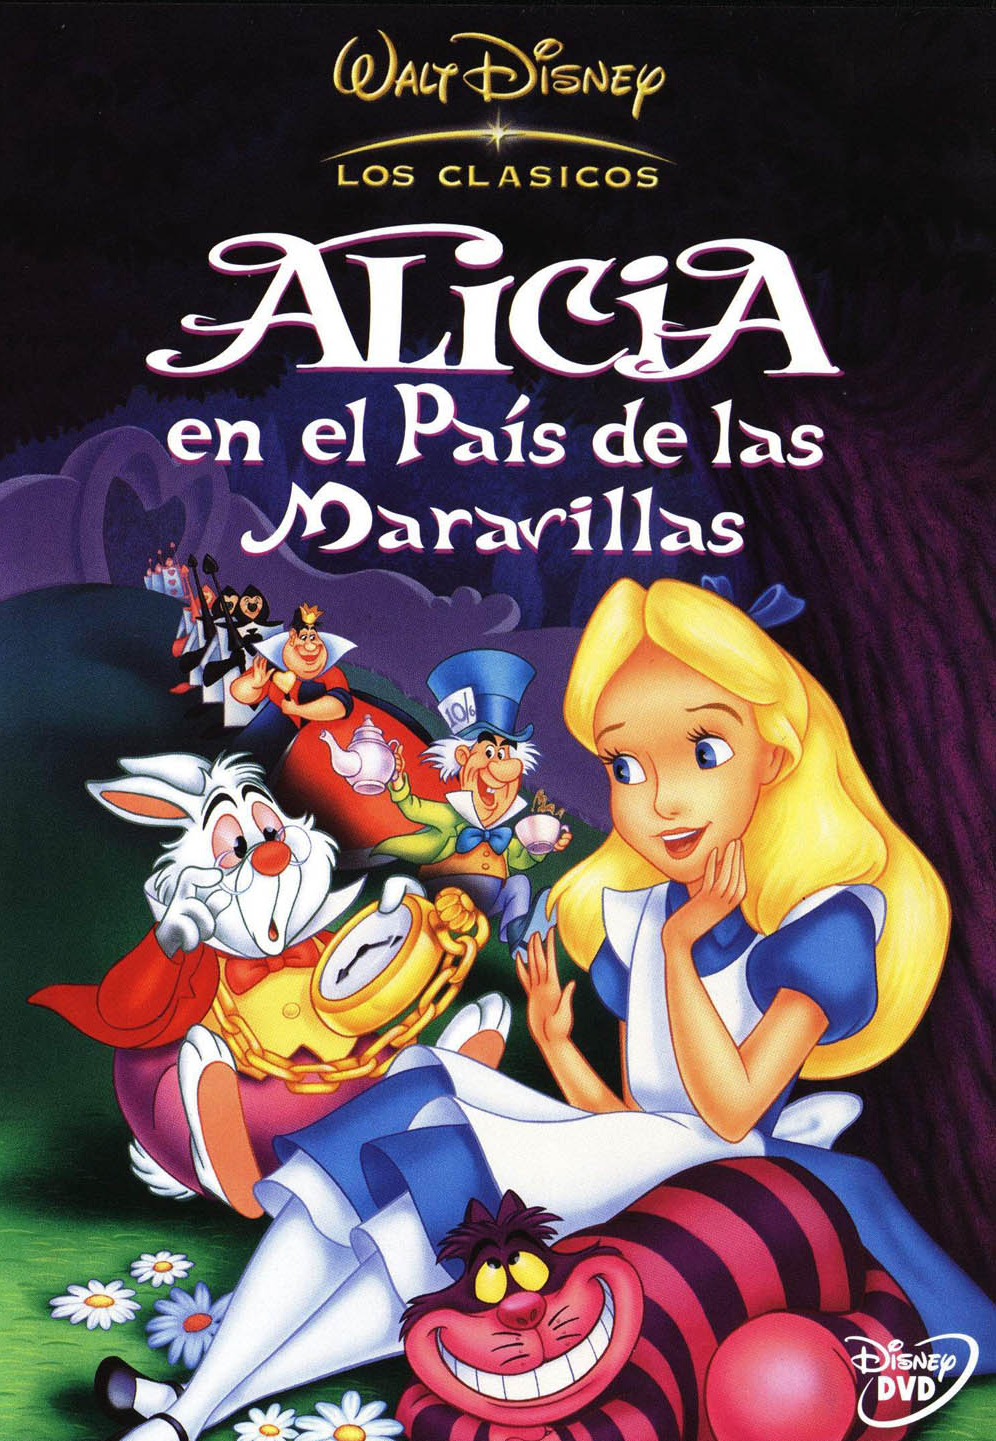 Clasicos Disney Disney Movies To Watch Animated Movies Disney Movies